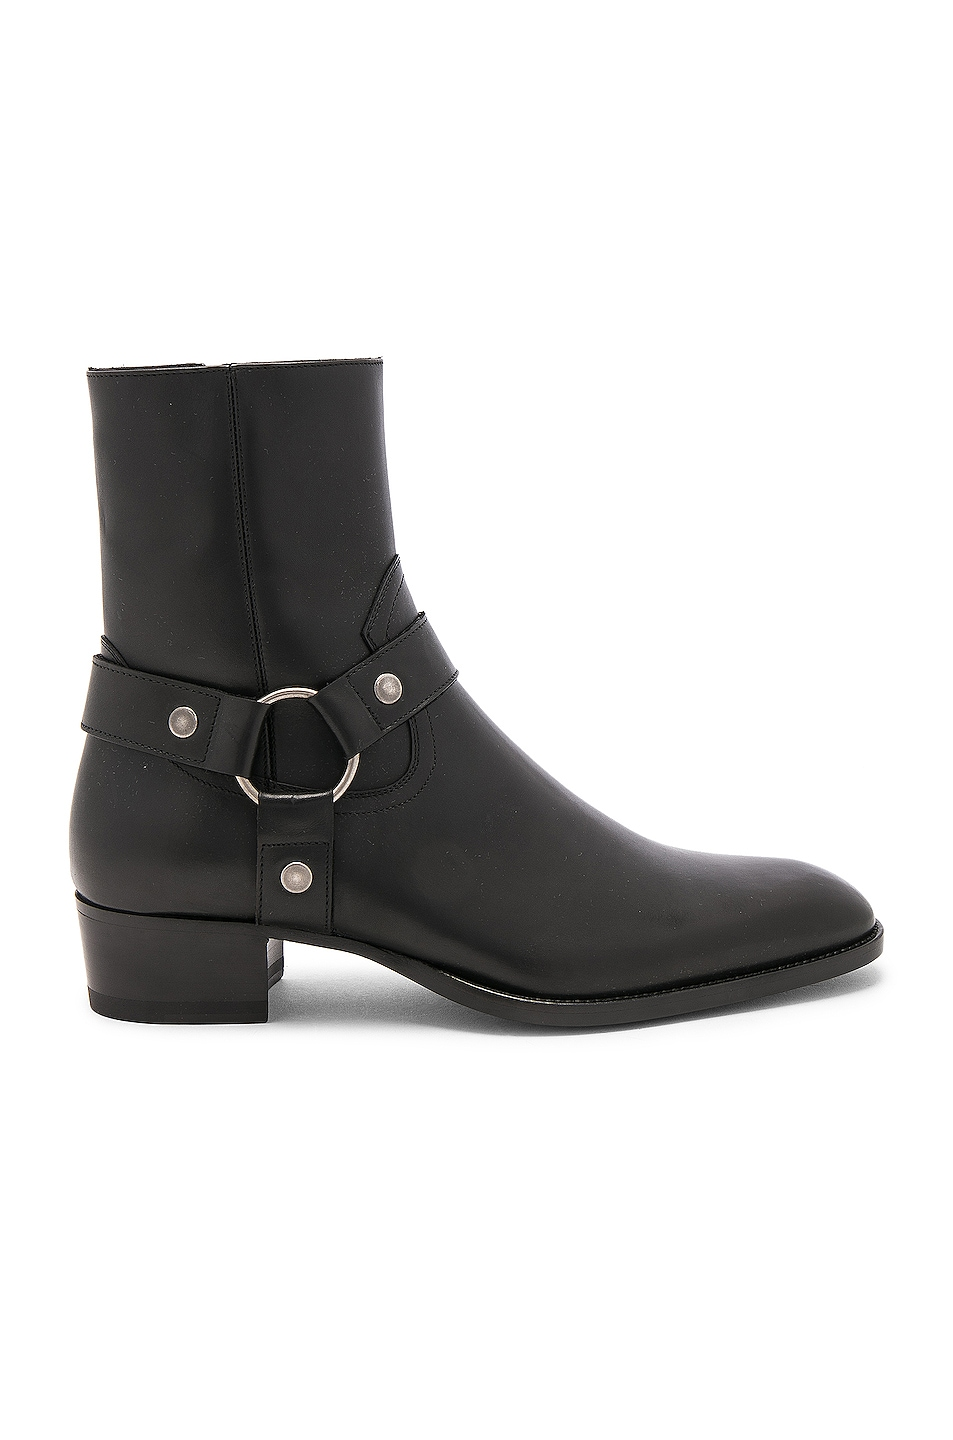 Image 1 of Saint Laurent Leather Wyatt Harness Boots in Black